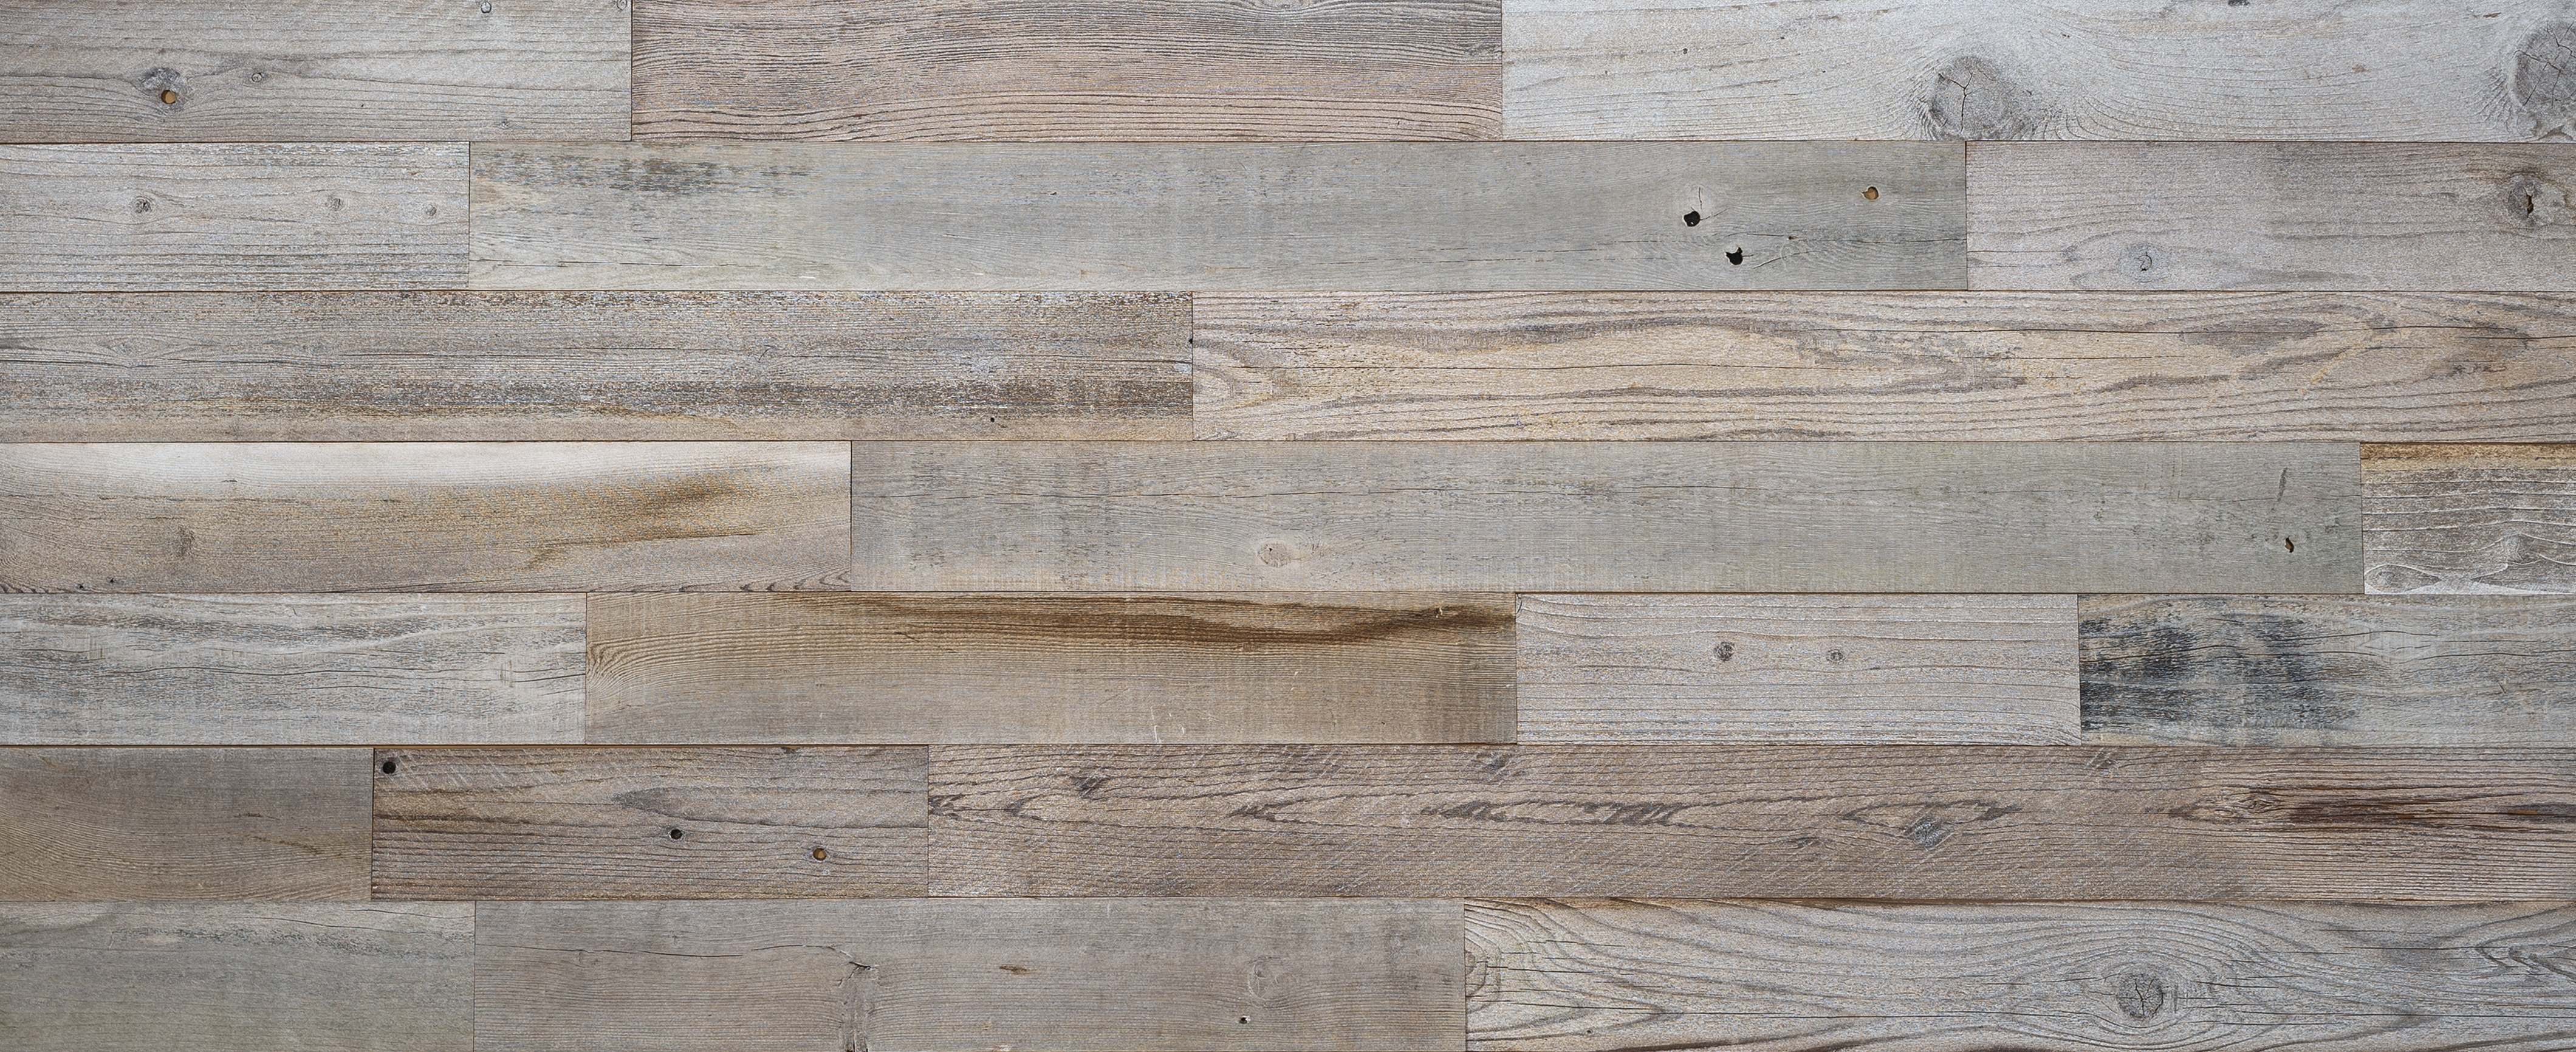 Stikwood Reclaimed Silvermyst material explorer | real reclaimed barnwood redwood peel and stick wood wall and ceiling planks with light, white, gold, gray, tan, black and brown colors.